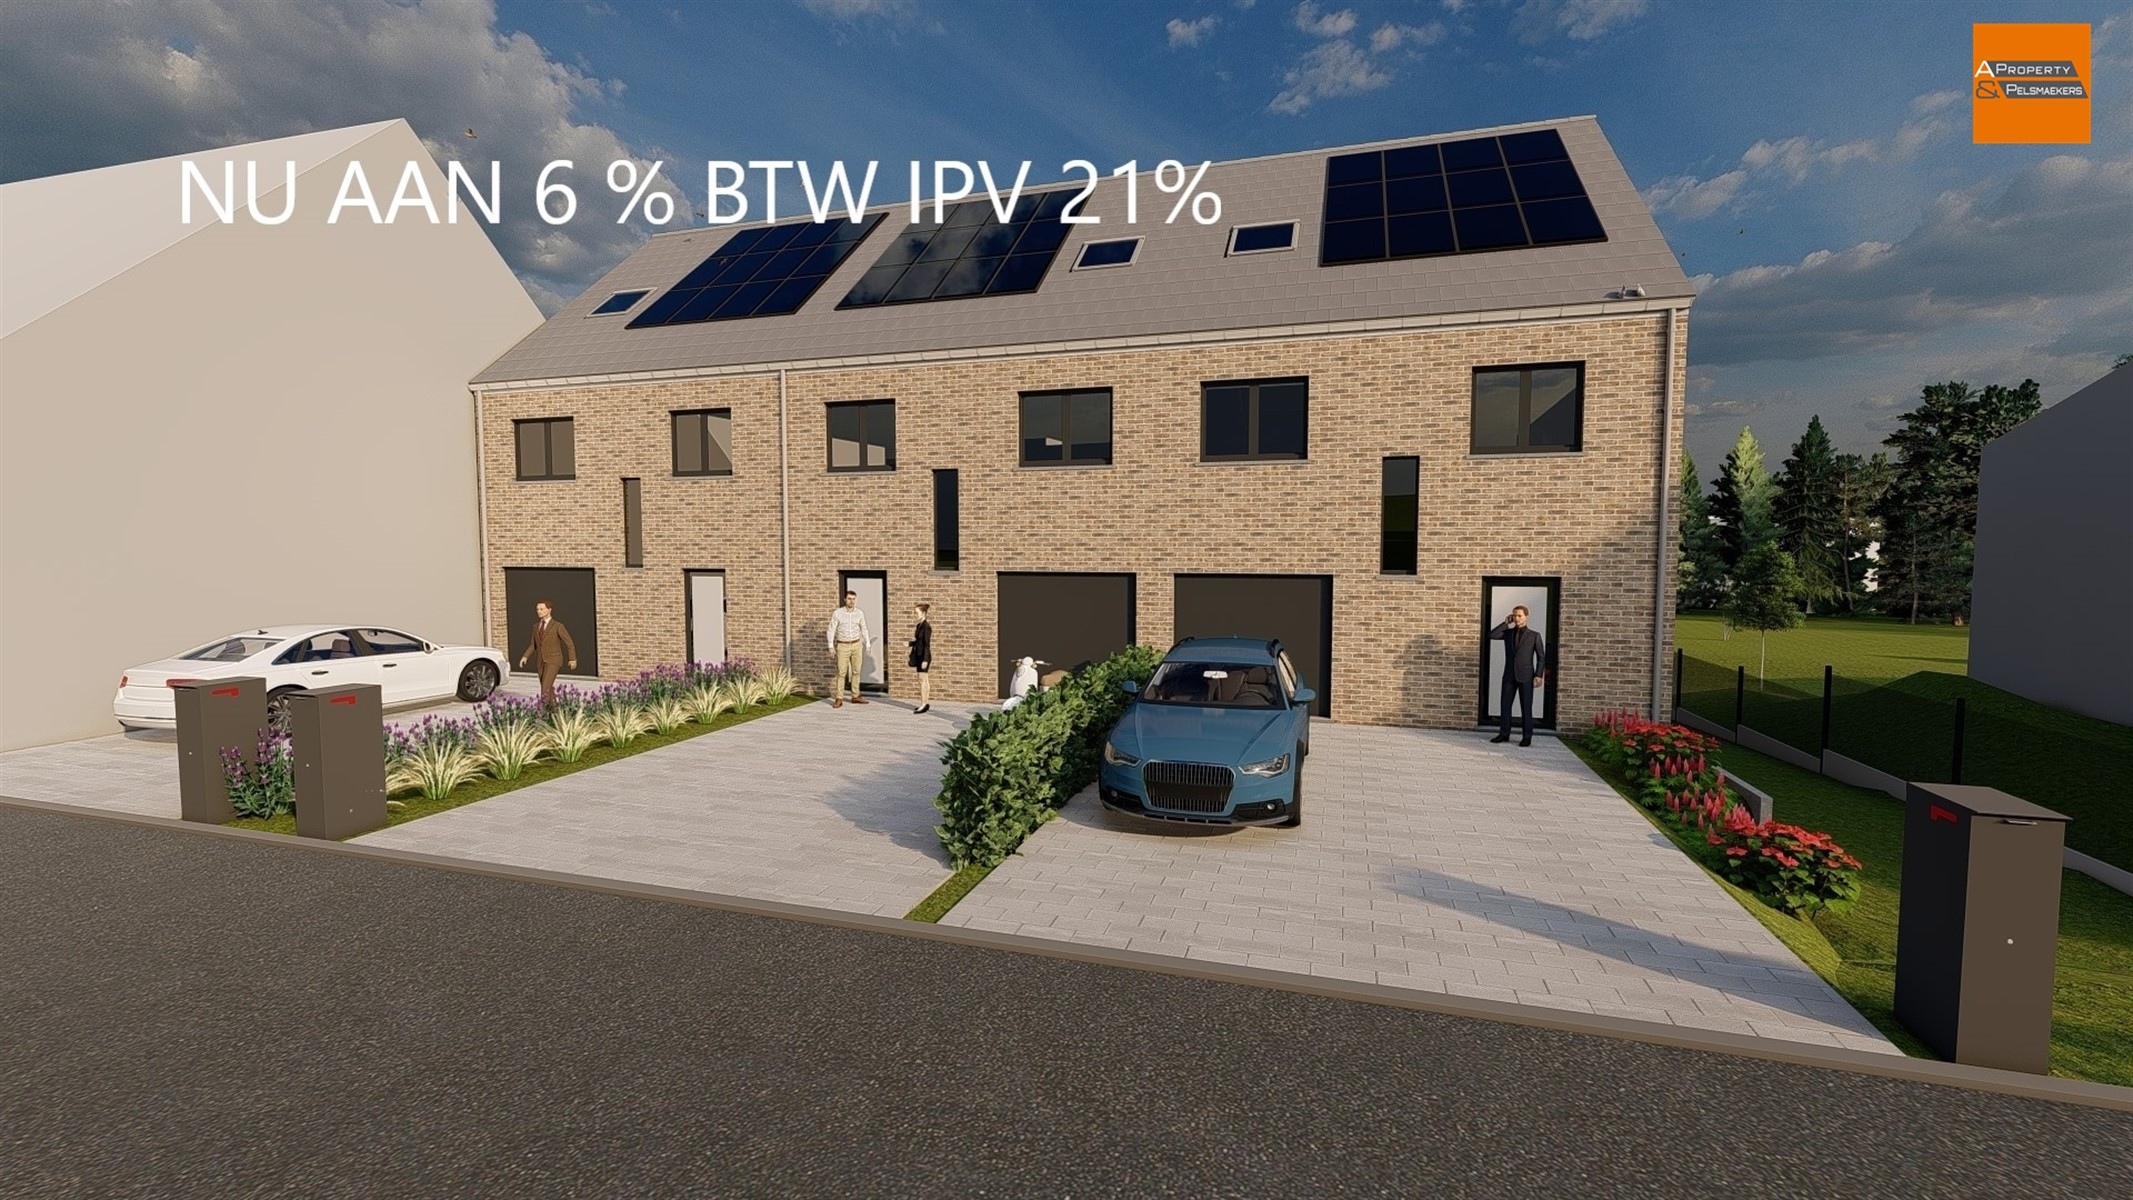 Real estate project : Egenhovenstraat IN BERTEM (3060) - Price from 447.100 € to 490.500 €